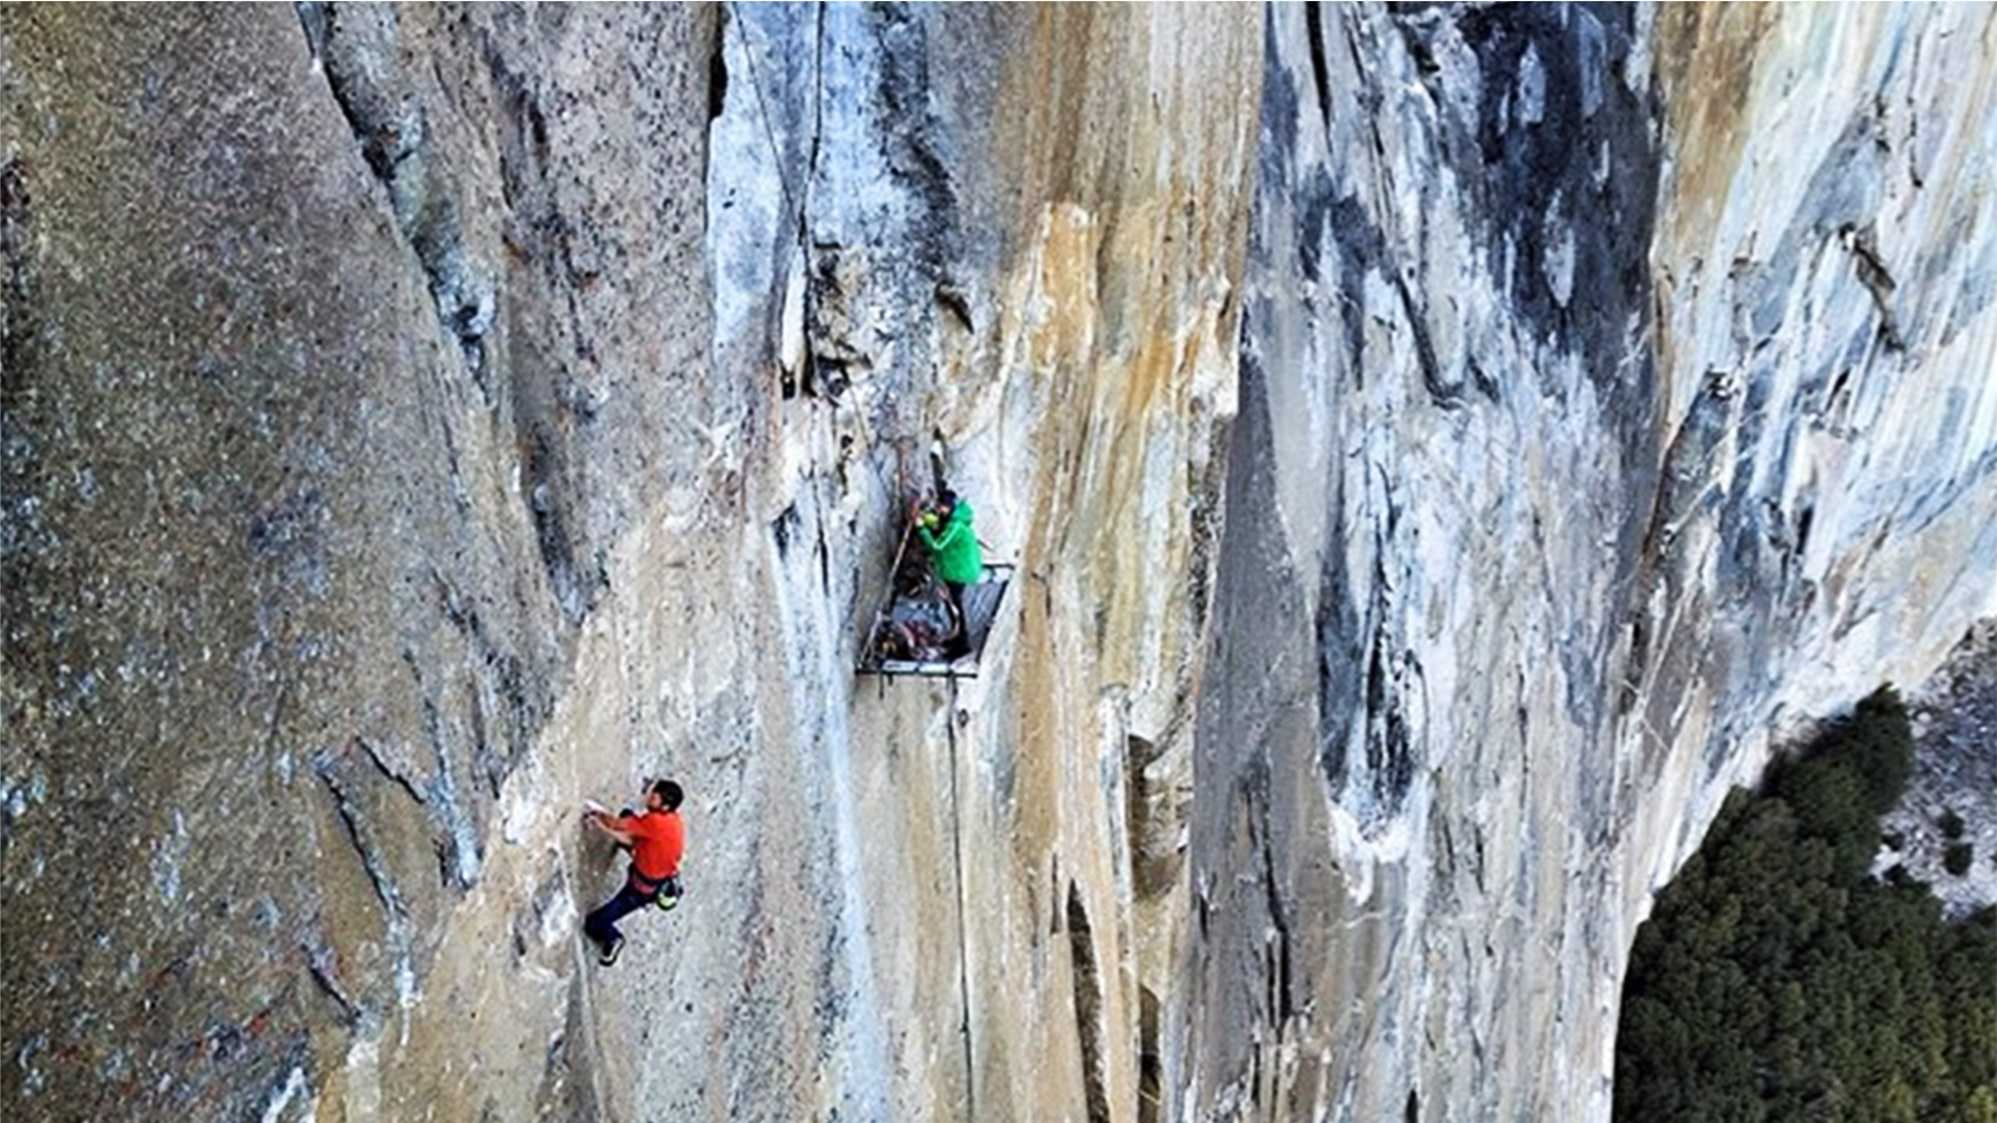 Kevin Jorgeson, left, and Tommy Caldwell, right, are climbingEl Capitan's Dawn Wall.